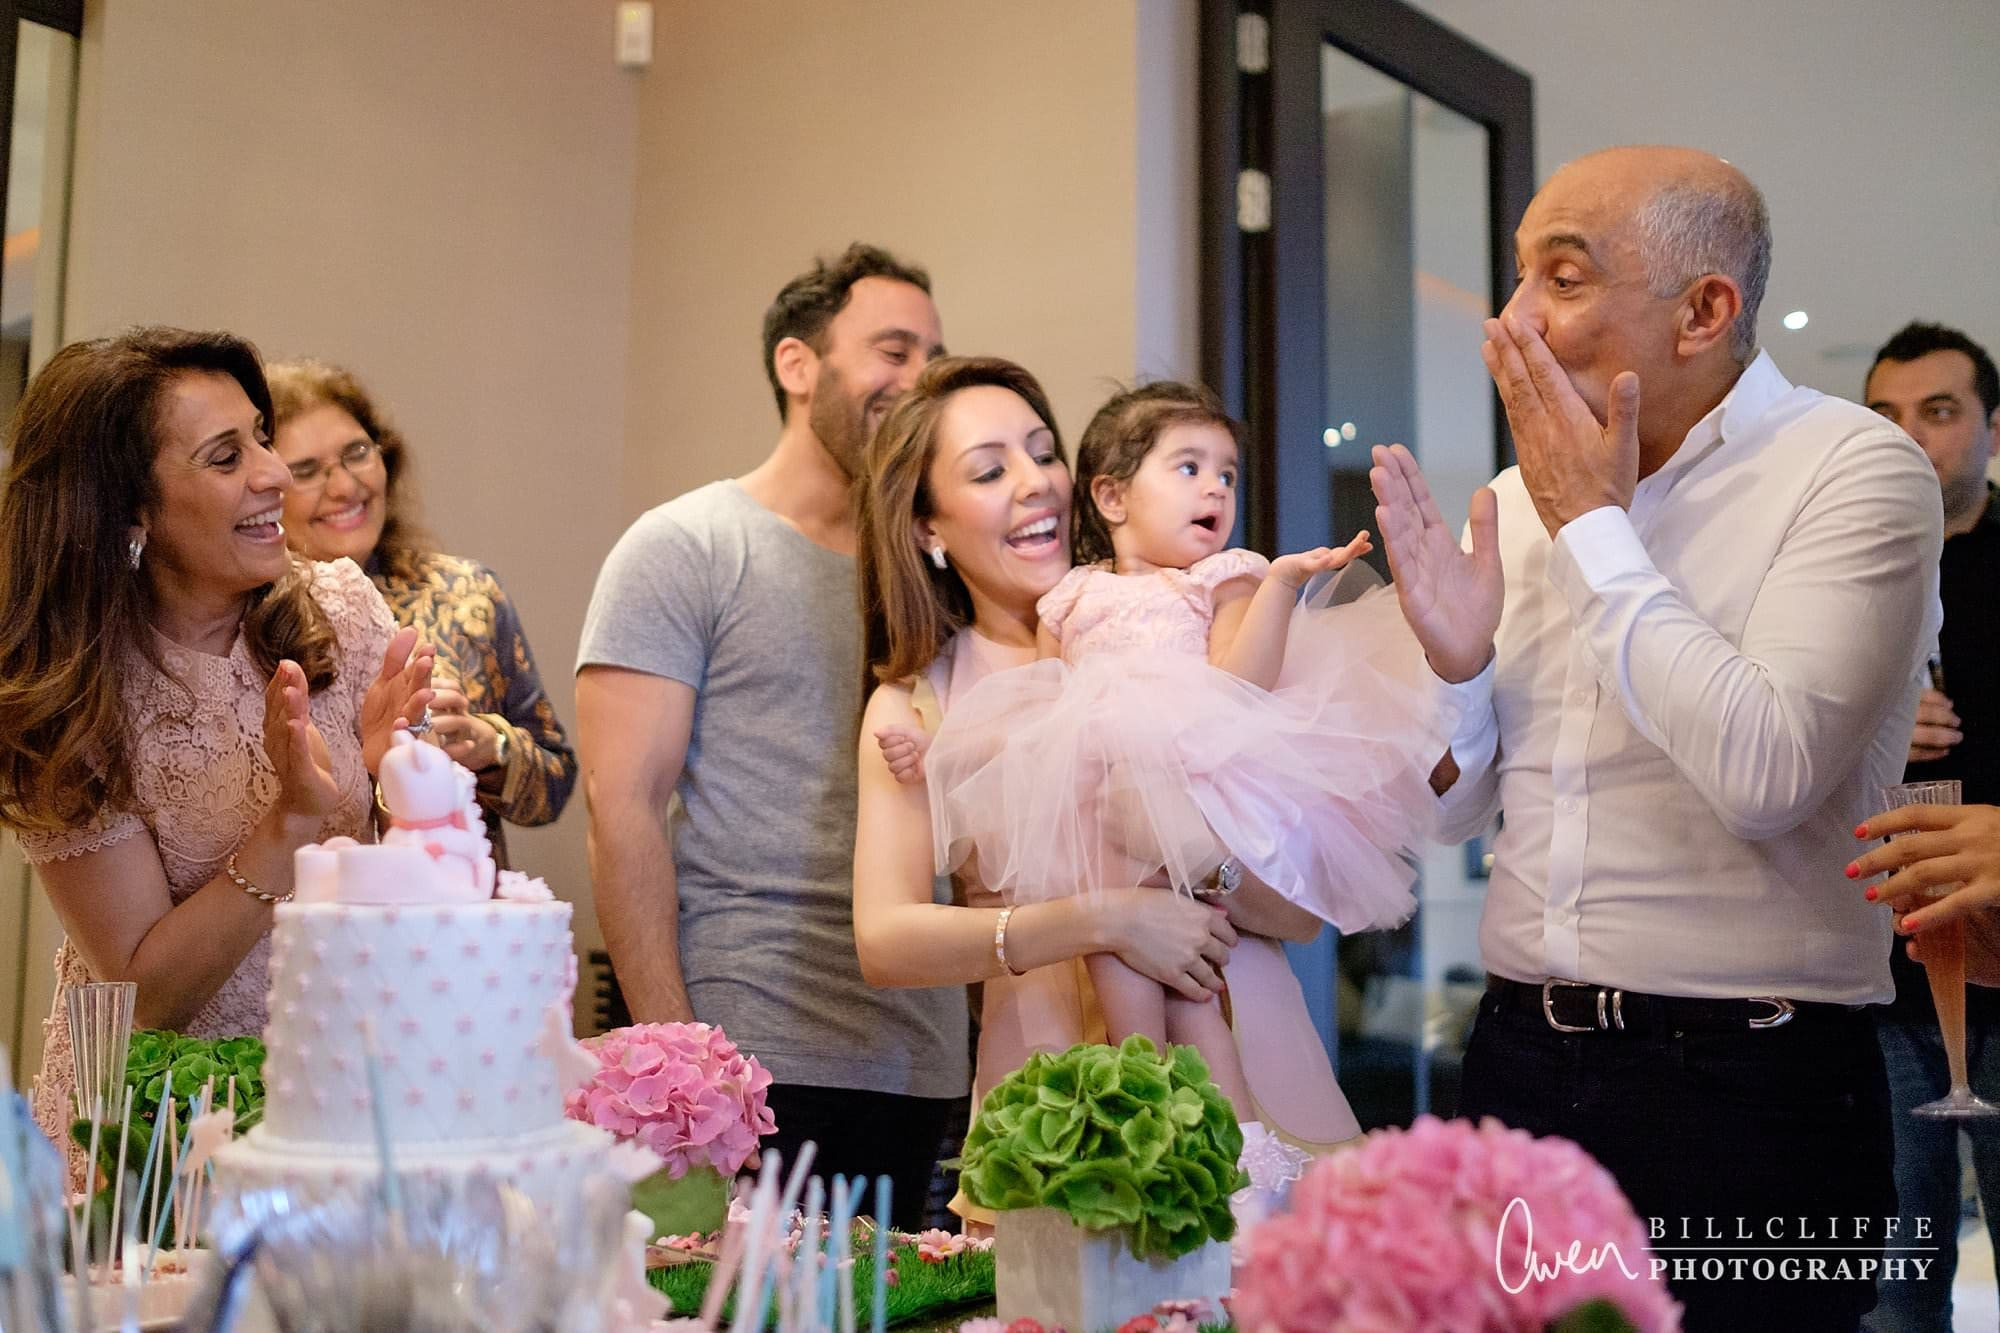 london childrens party photographer belgravia 012 - A 1st birthday party in Belgravia